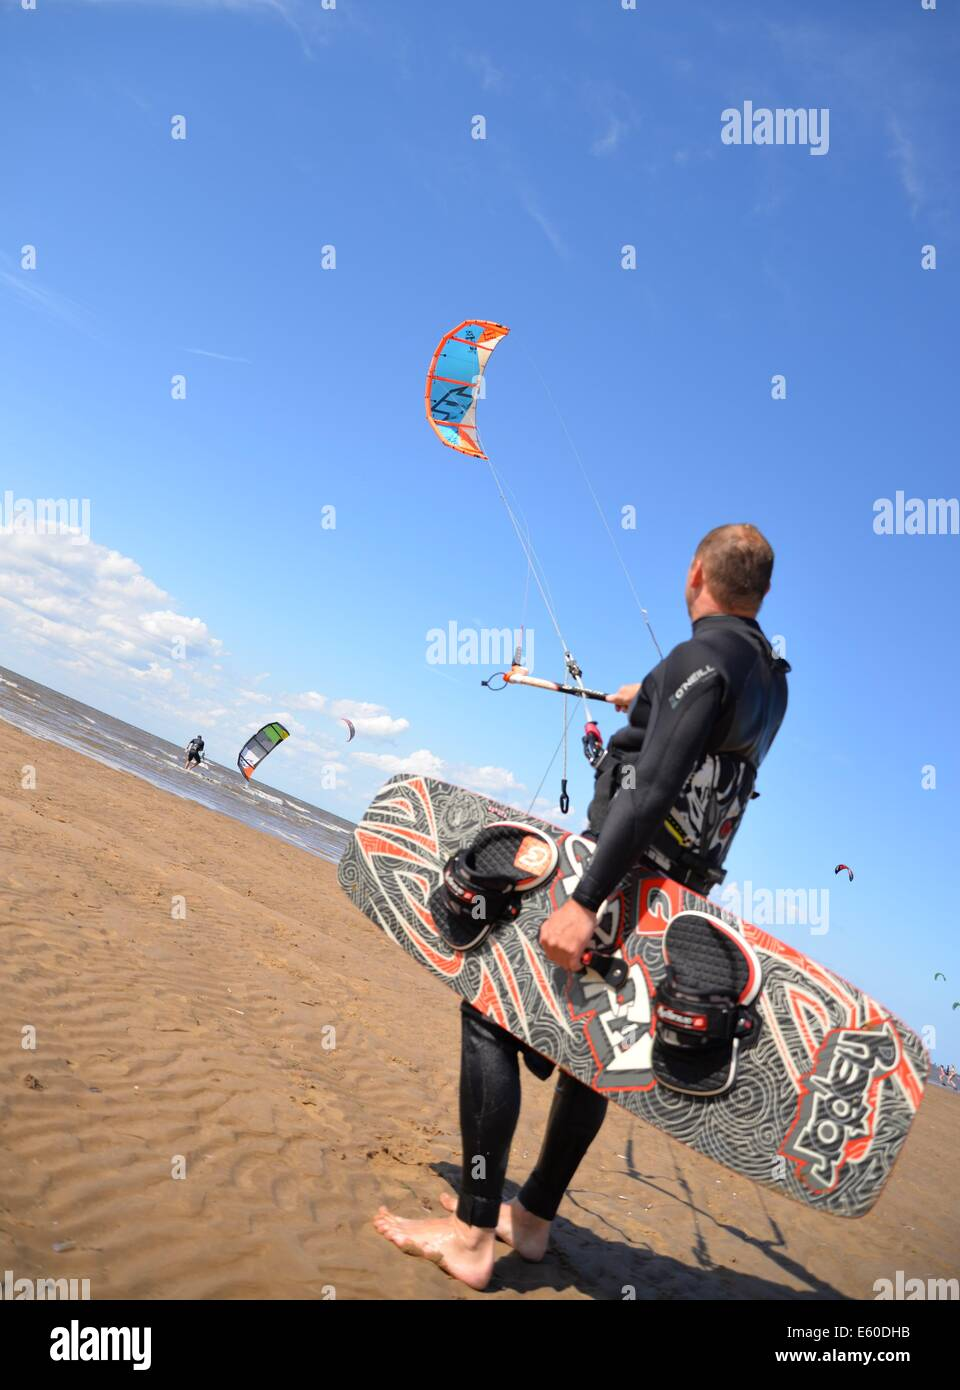 Man looking up towards his kite before he gets into the sea Hunstanton , Norfolk, UK, England - Stock Image